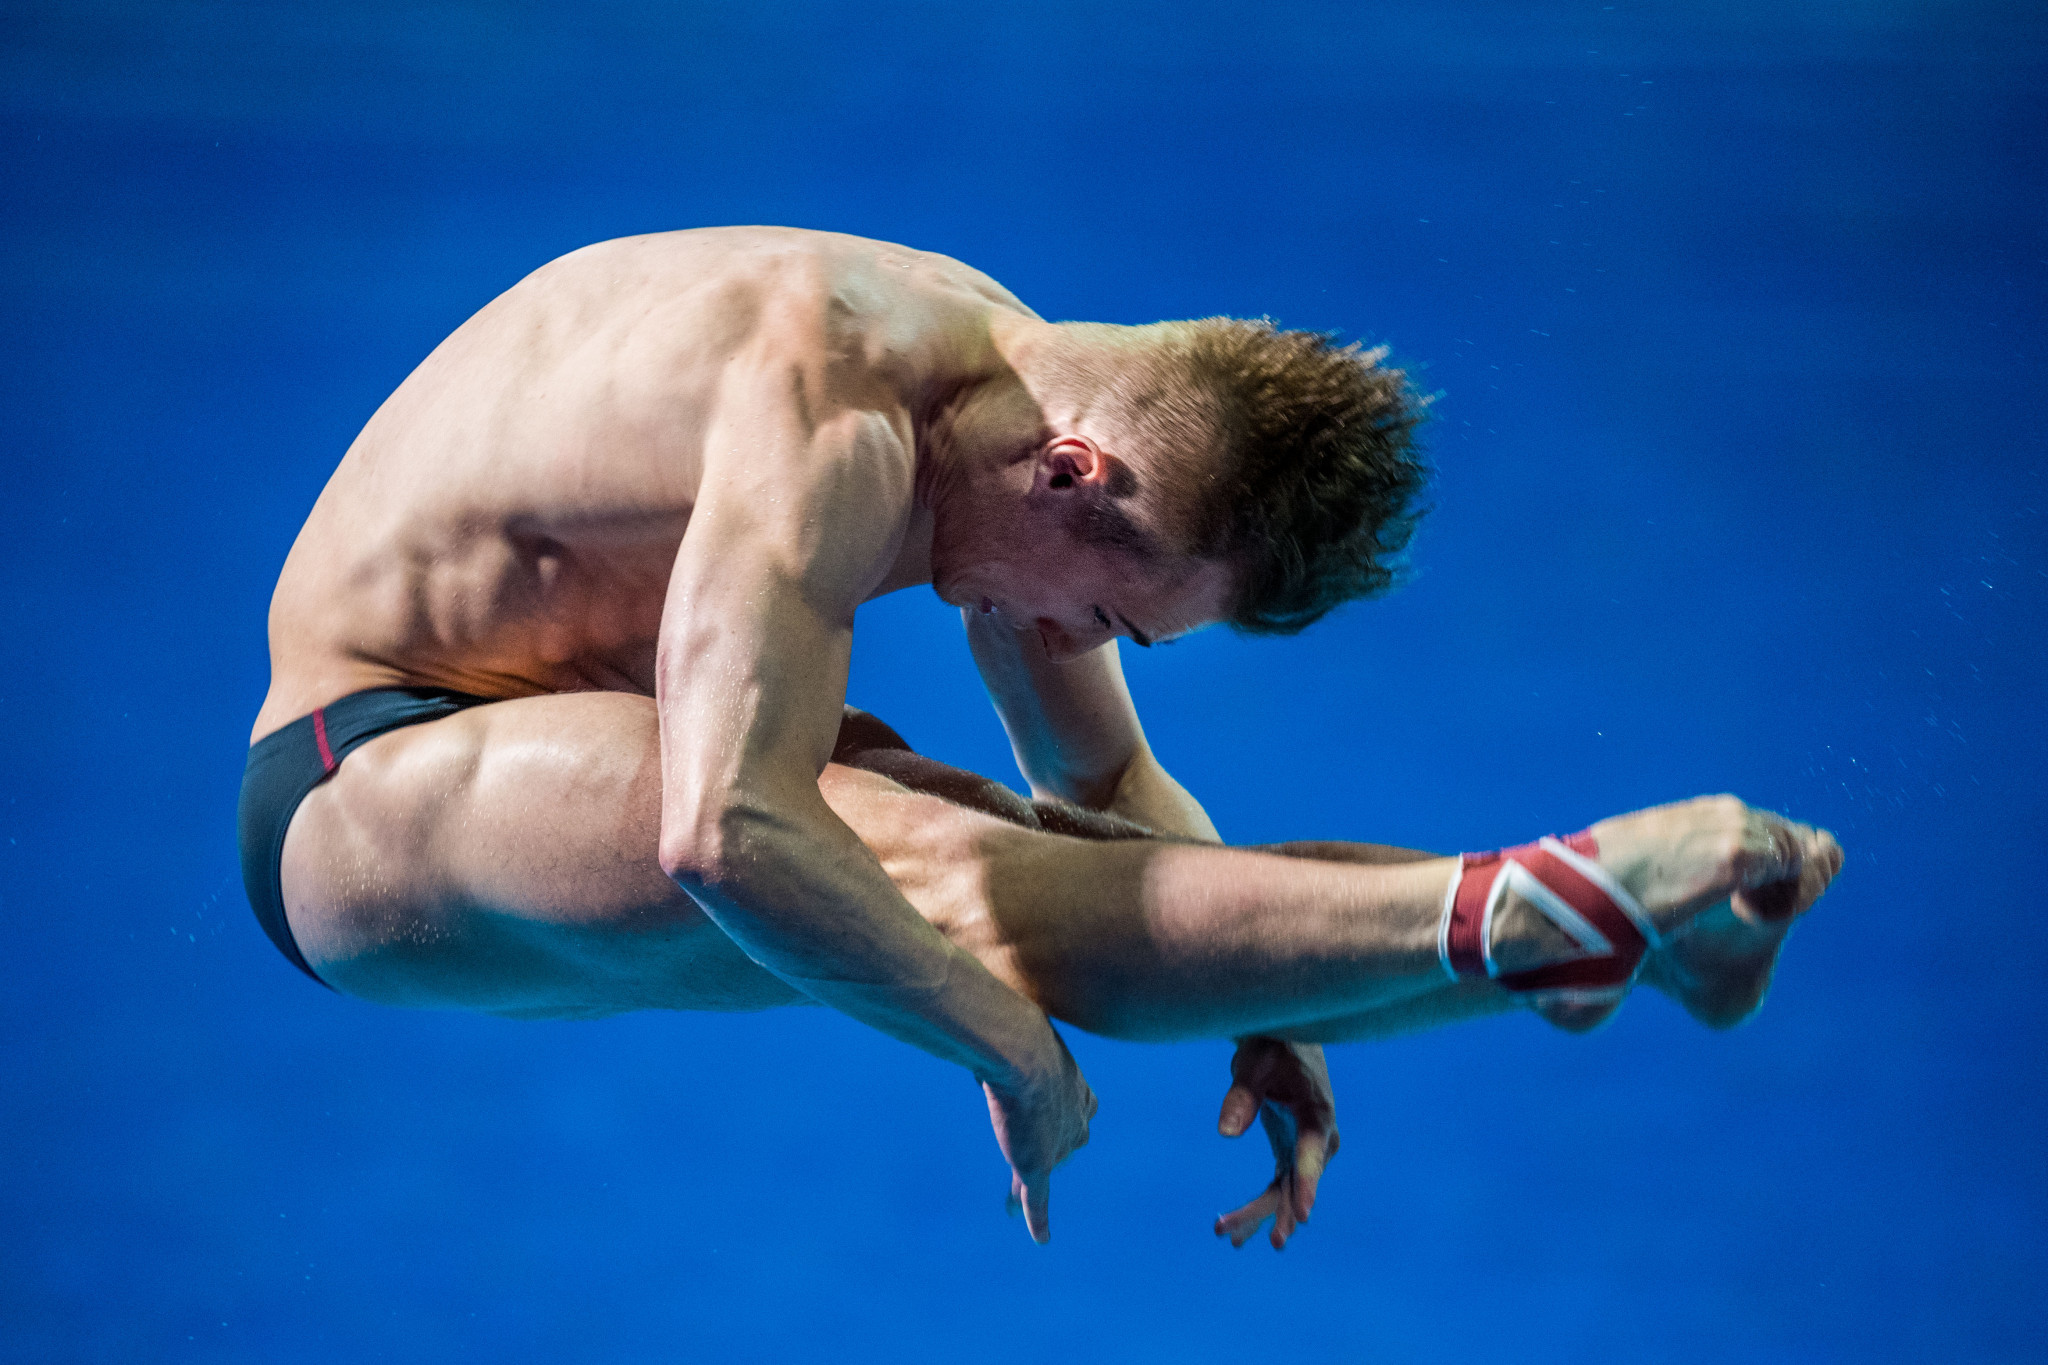 Great Britain, Russia and Ukraine to battle for diving medals at Glasgow 2018 European Championships